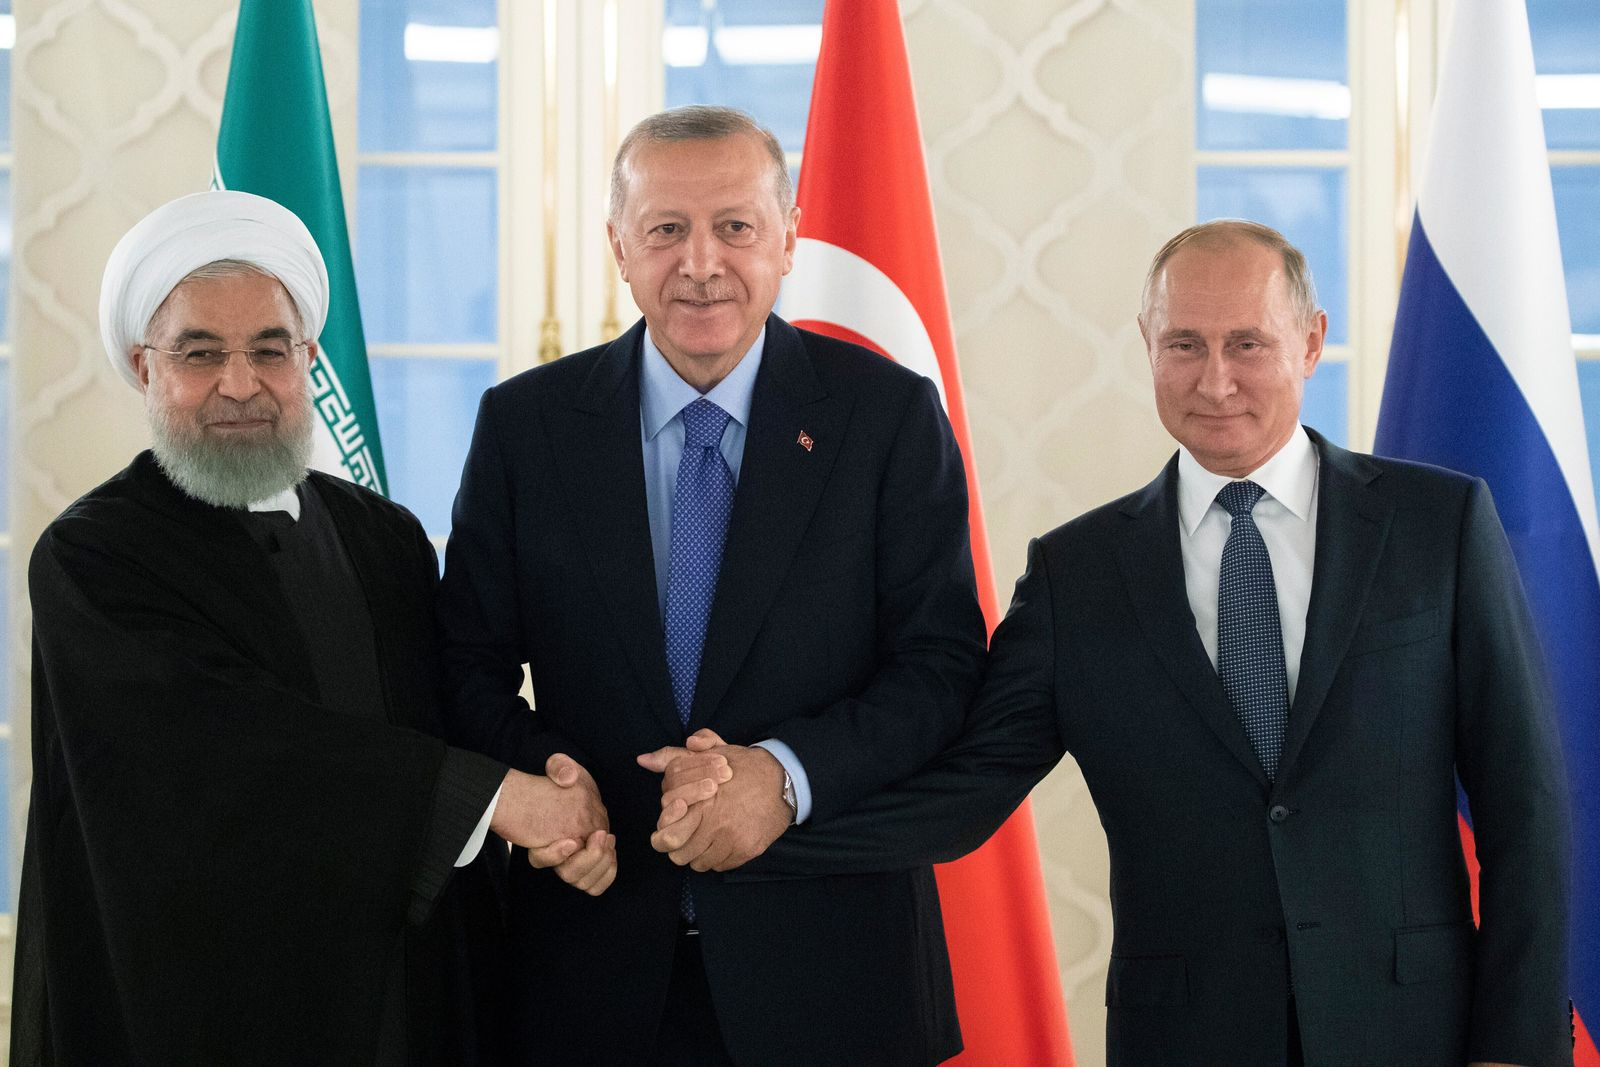 FILE - This Sept. 16, 2019 file photo, from left: Iranian President Hassan Rouhani, Turkish President Recep Tayyip Erdogan and Russian President Vladimir Putin shake hands during their meeting in Ankara, Turkey. America maintains some 1,000 troops in Syria who work alongside the Kurdish fighters. America's foes -- Assad, Russia, and Iran -- all stand to gain from a U.S. troop withdrawal in Syria and will likely bide their time until they can move in and retake the area. (AP Photo/Pavel Golovkin, Pool, File)